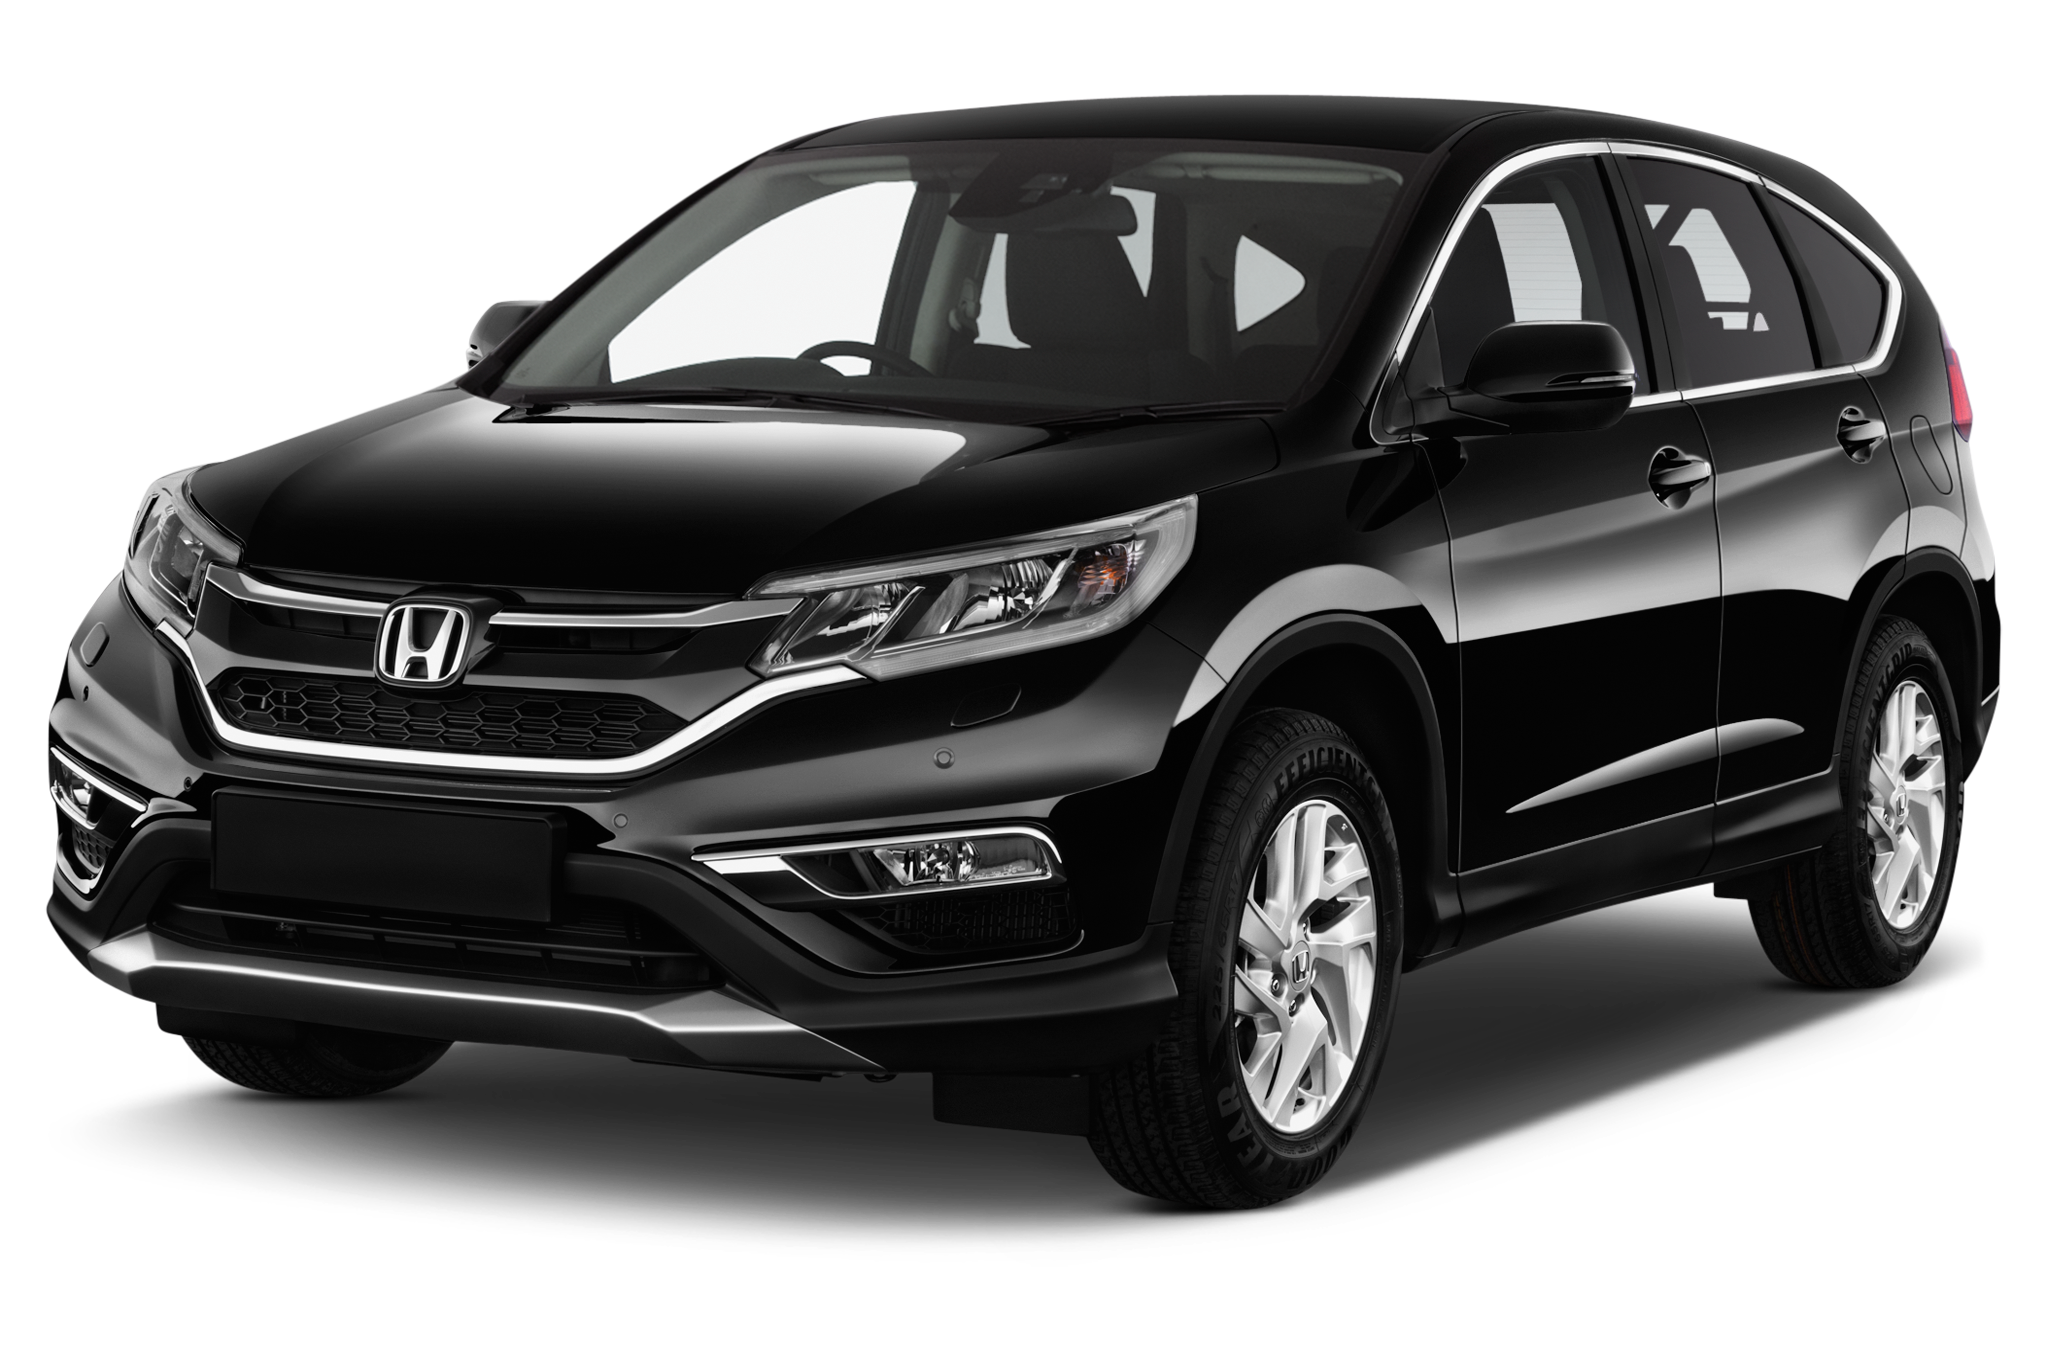 2015 honda cr v. Black Bedroom Furniture Sets. Home Design Ideas